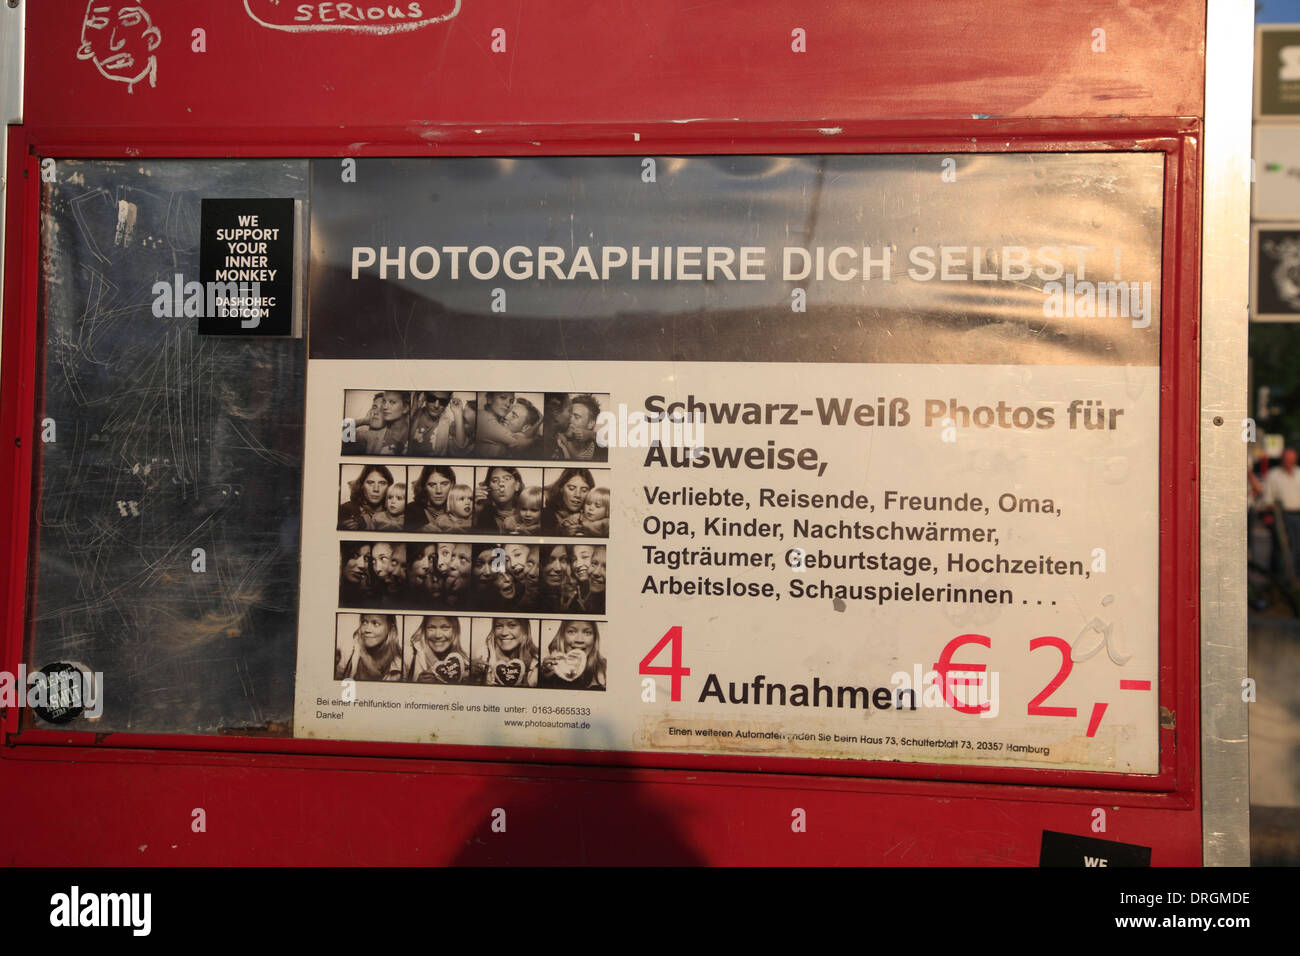 Historic old analog black and white Photo booth, Karoviertel, Hamburg, Germany, Europe - Stock Image